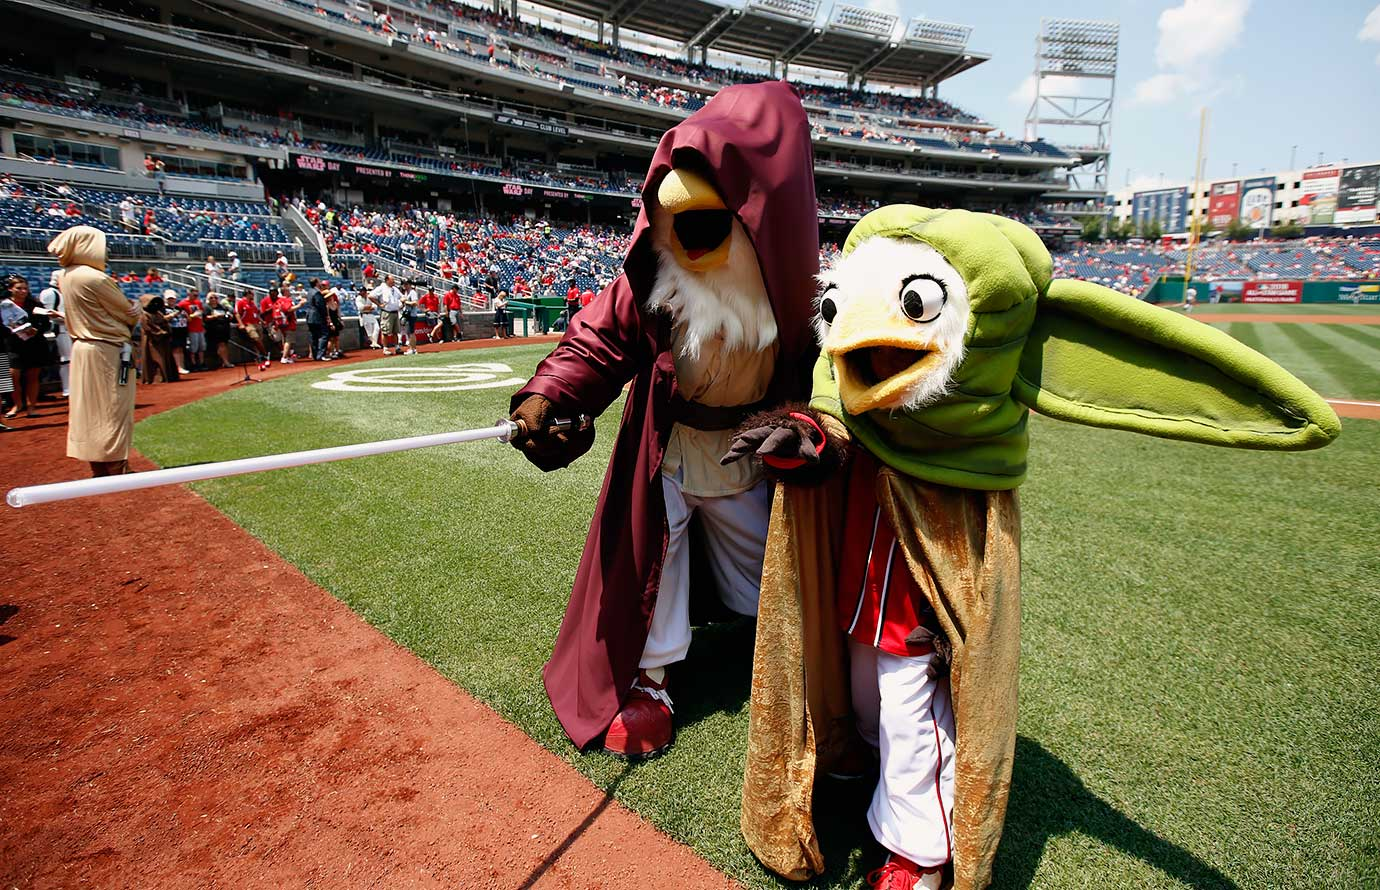 Washington Nationals mascots Screech and Little Screech dress as Star Wars characters before the game against the Los Angeles Dodgers on July 19, 2015 at Nationals Park in Washington, D.C.